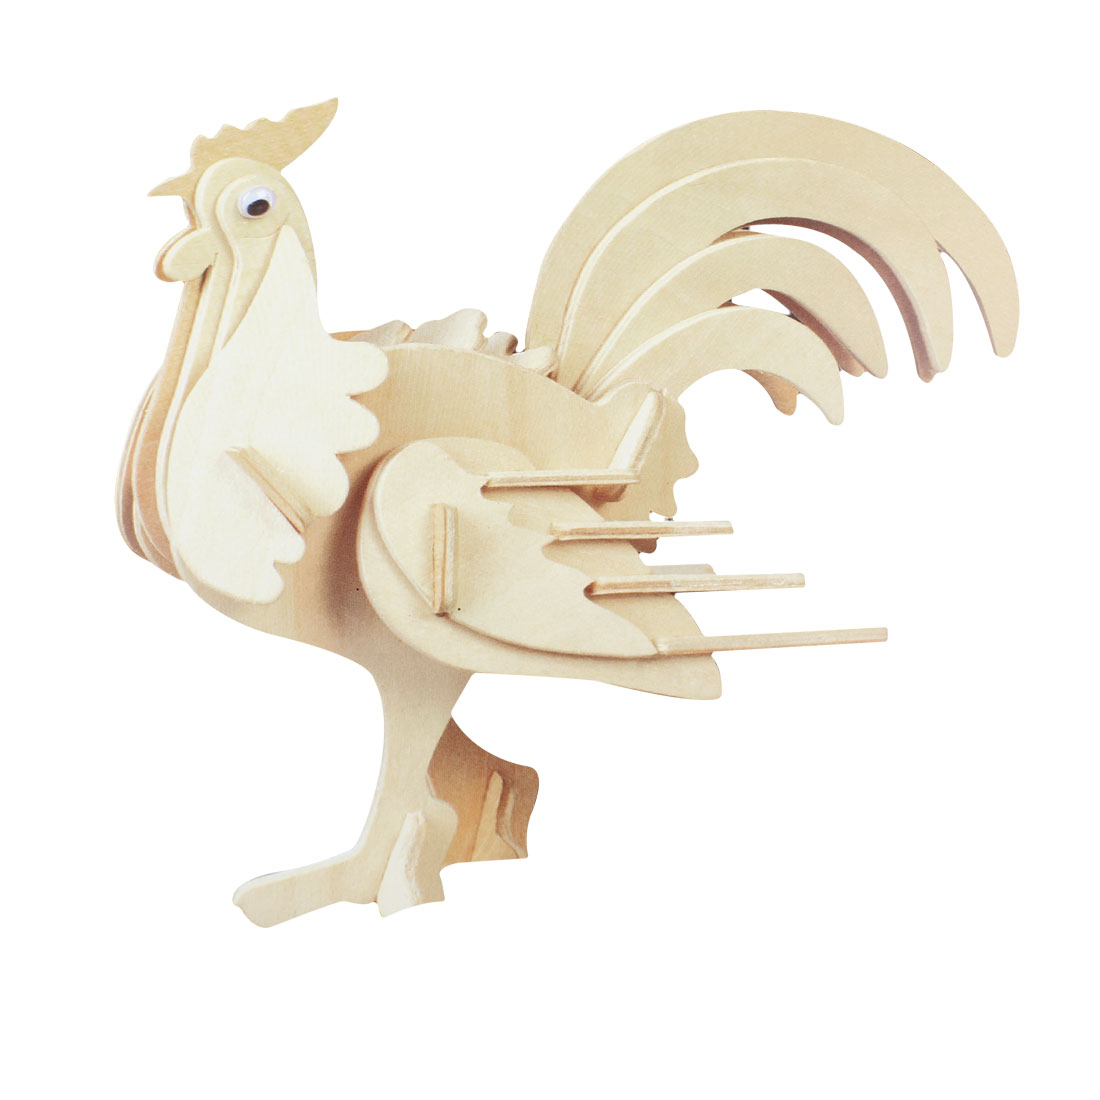 Cubic Rooster Model Collecting Wooden Puzzle Toy for Kids